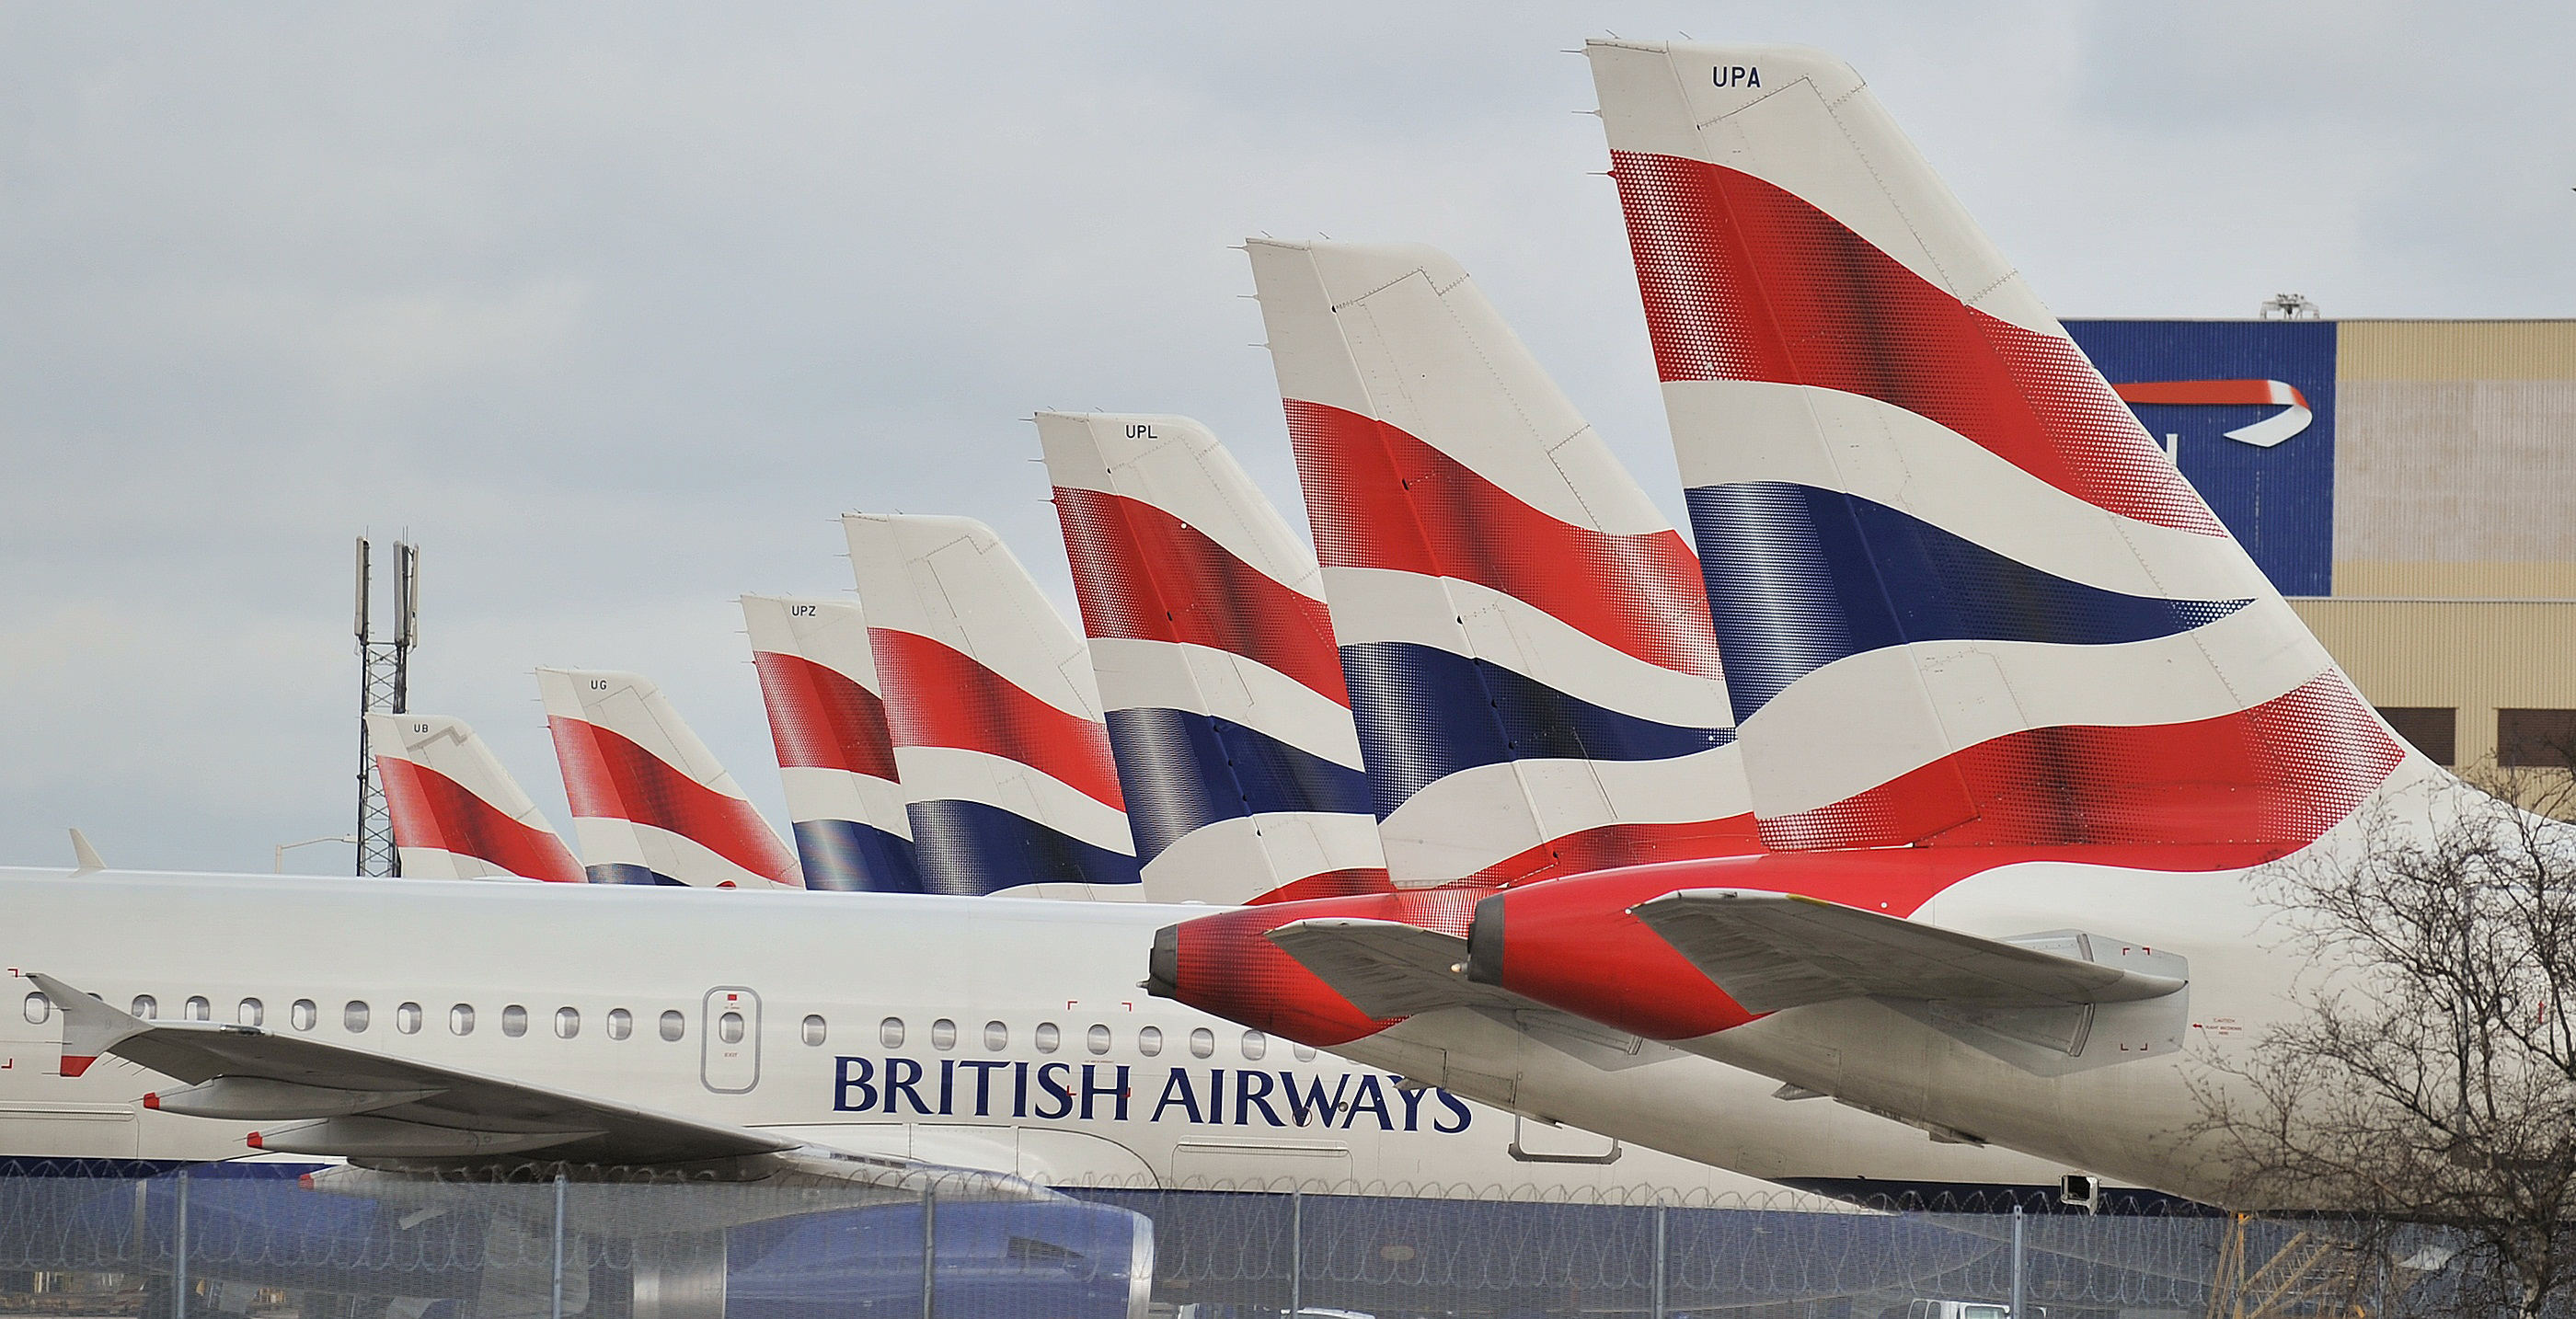 British Airways planes are grounded at Heathrow Airport on March 28, 2010.